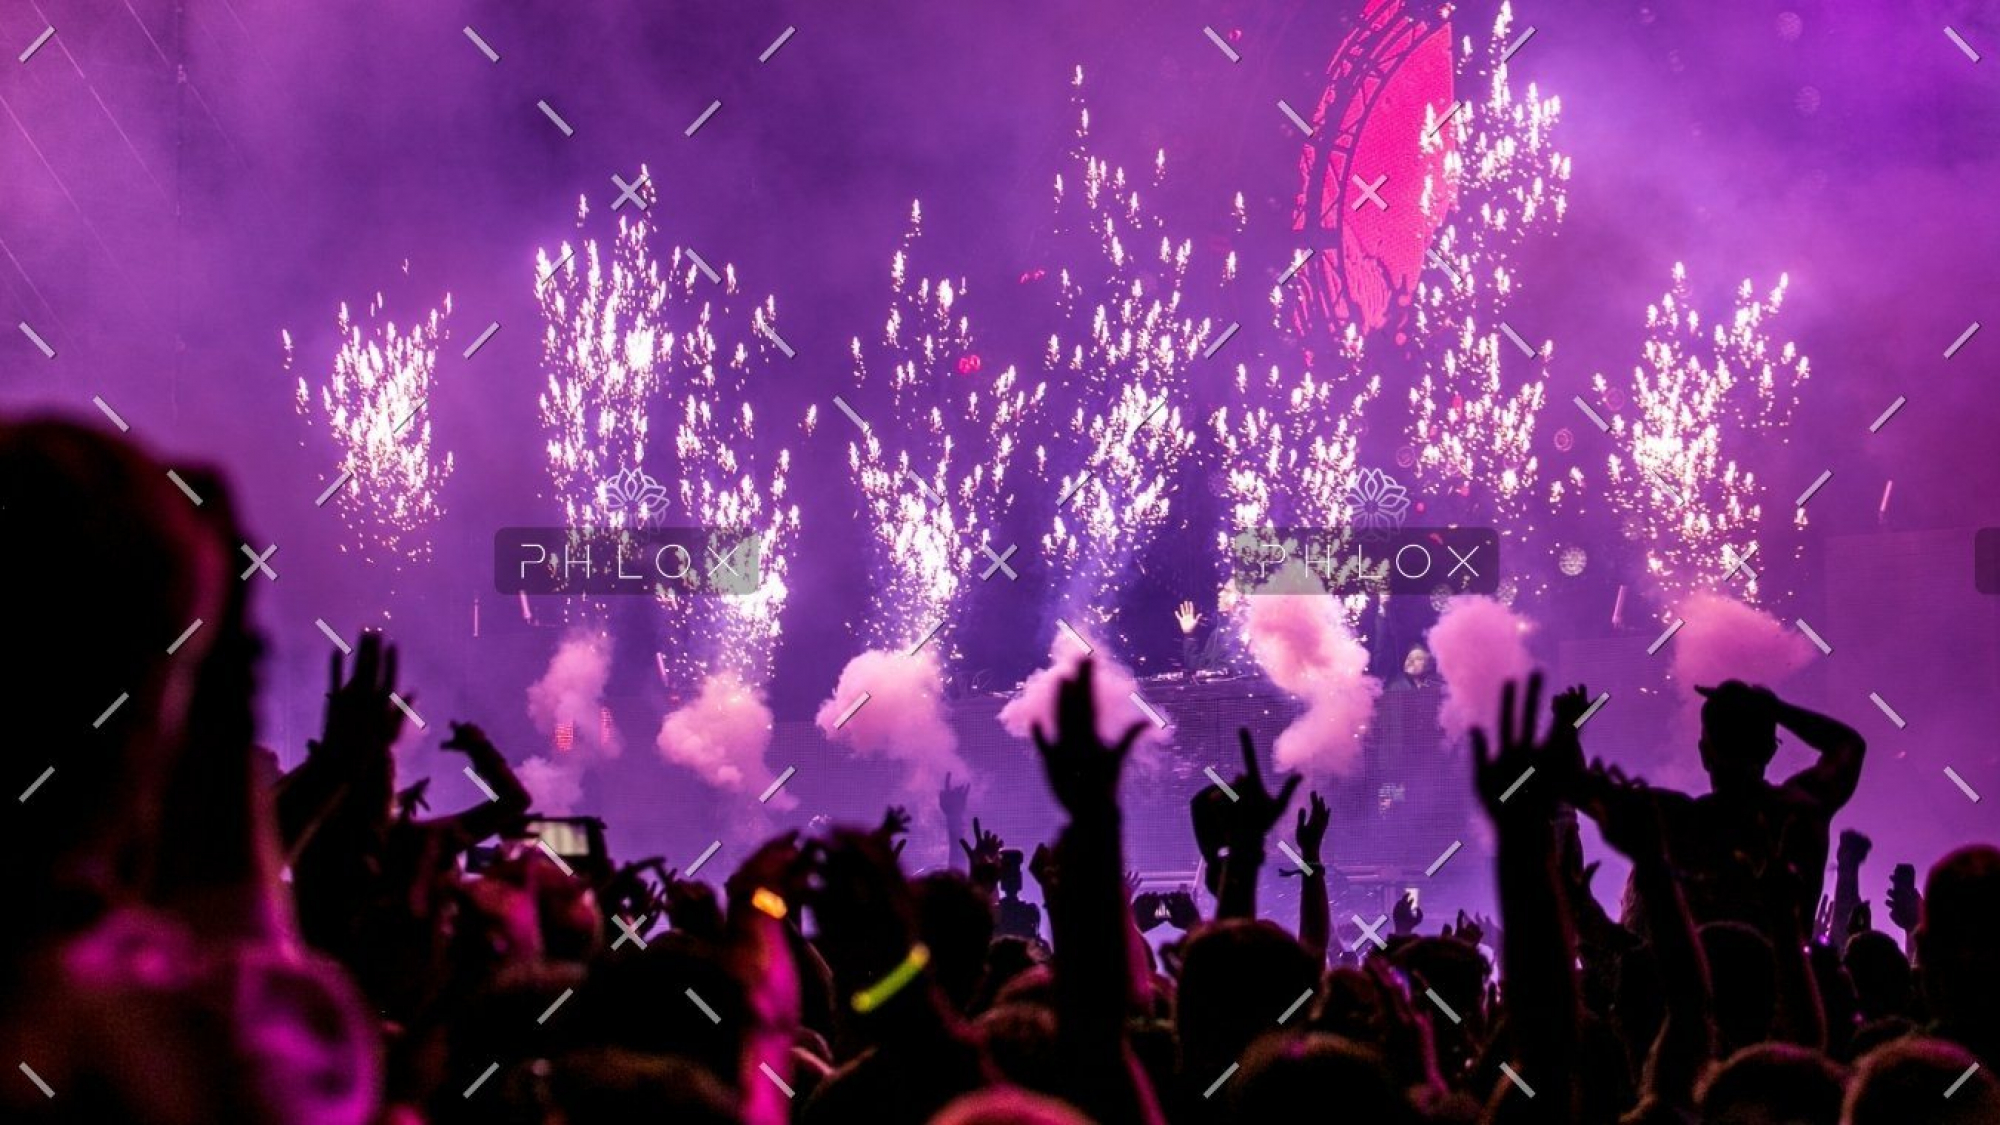 demo-attachment-32-purple-fireworks-effect-1190298